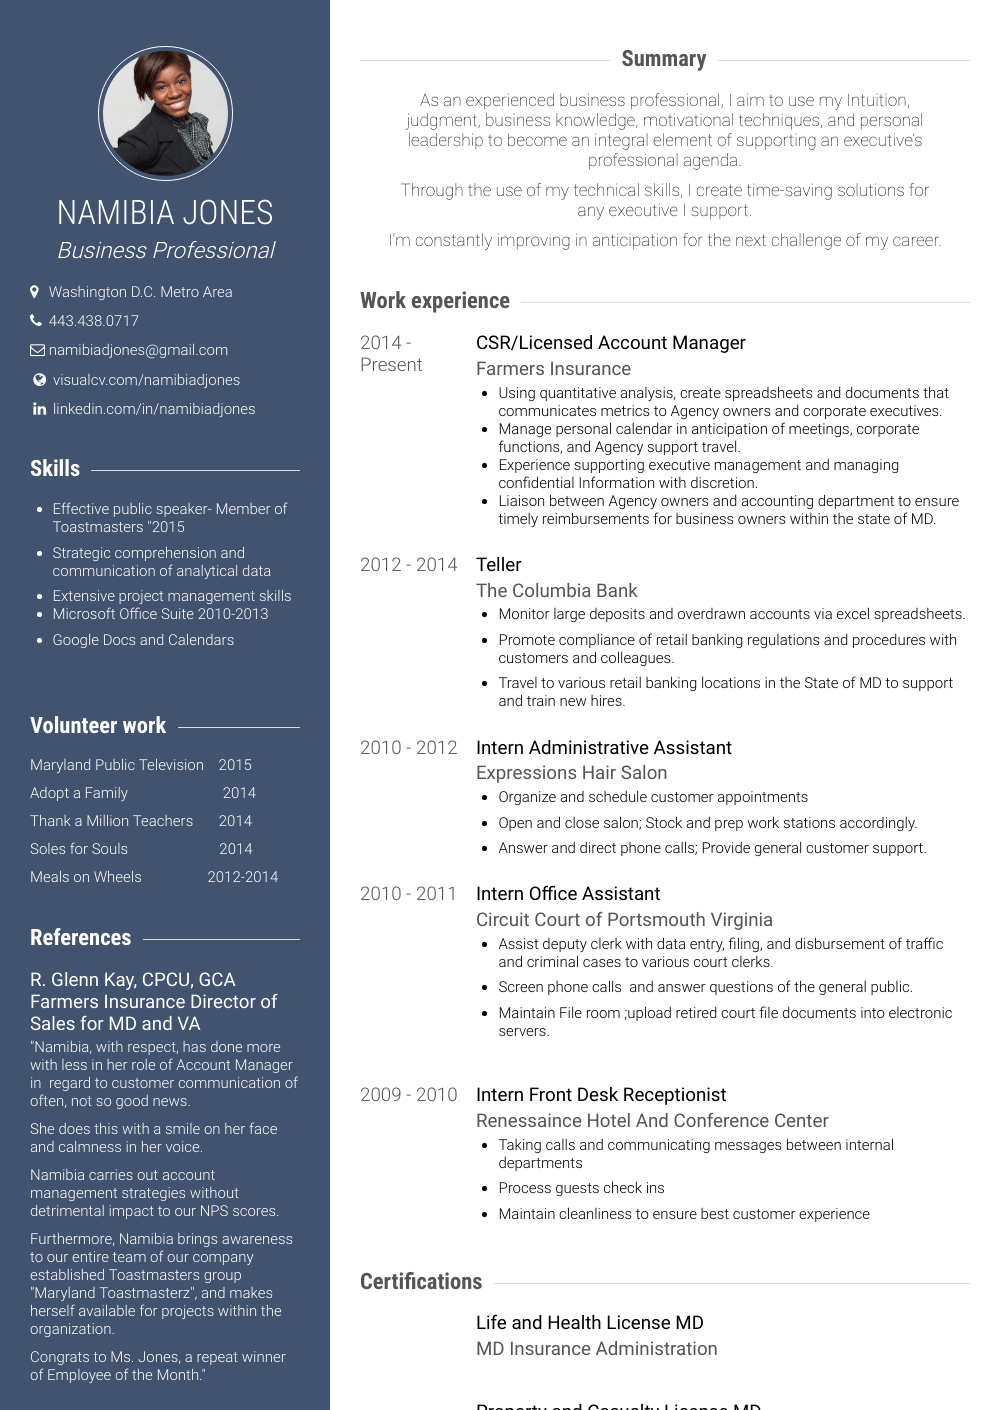 Csr Resume Samples & Templates VisualCV